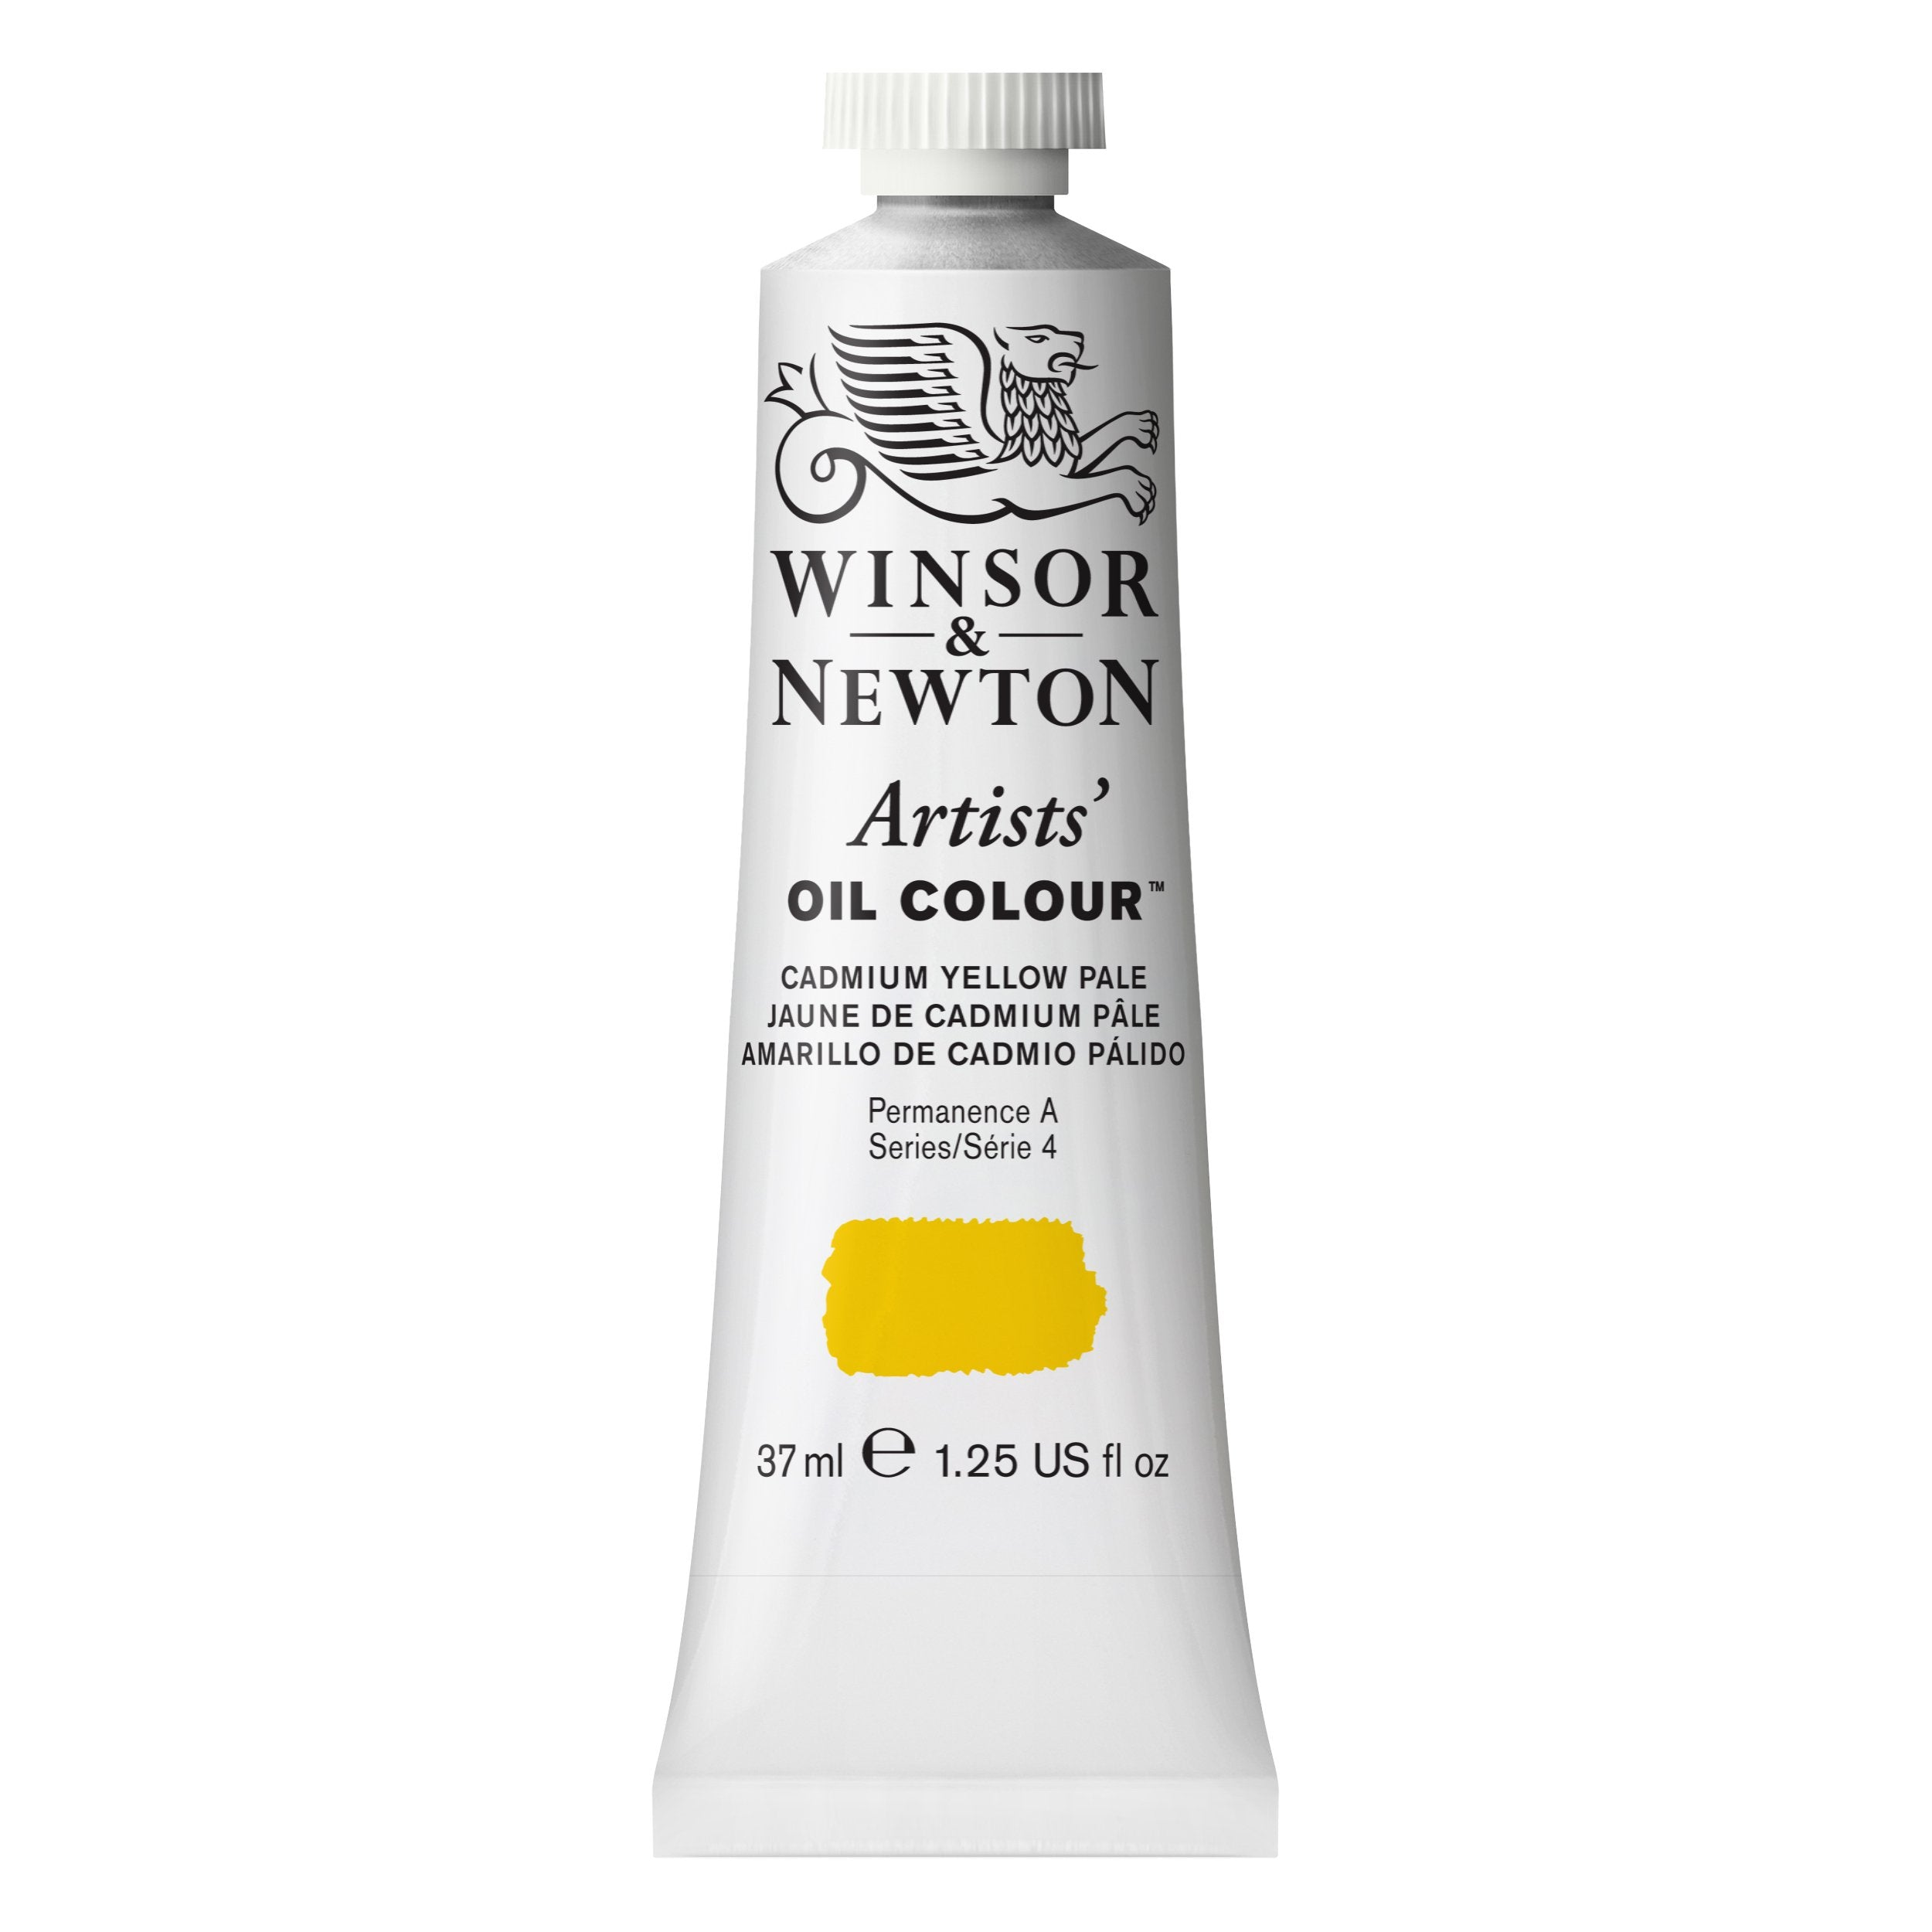 Winsor & Newton Artists Oil Color, 37ml, Cadmium Yellow Pale